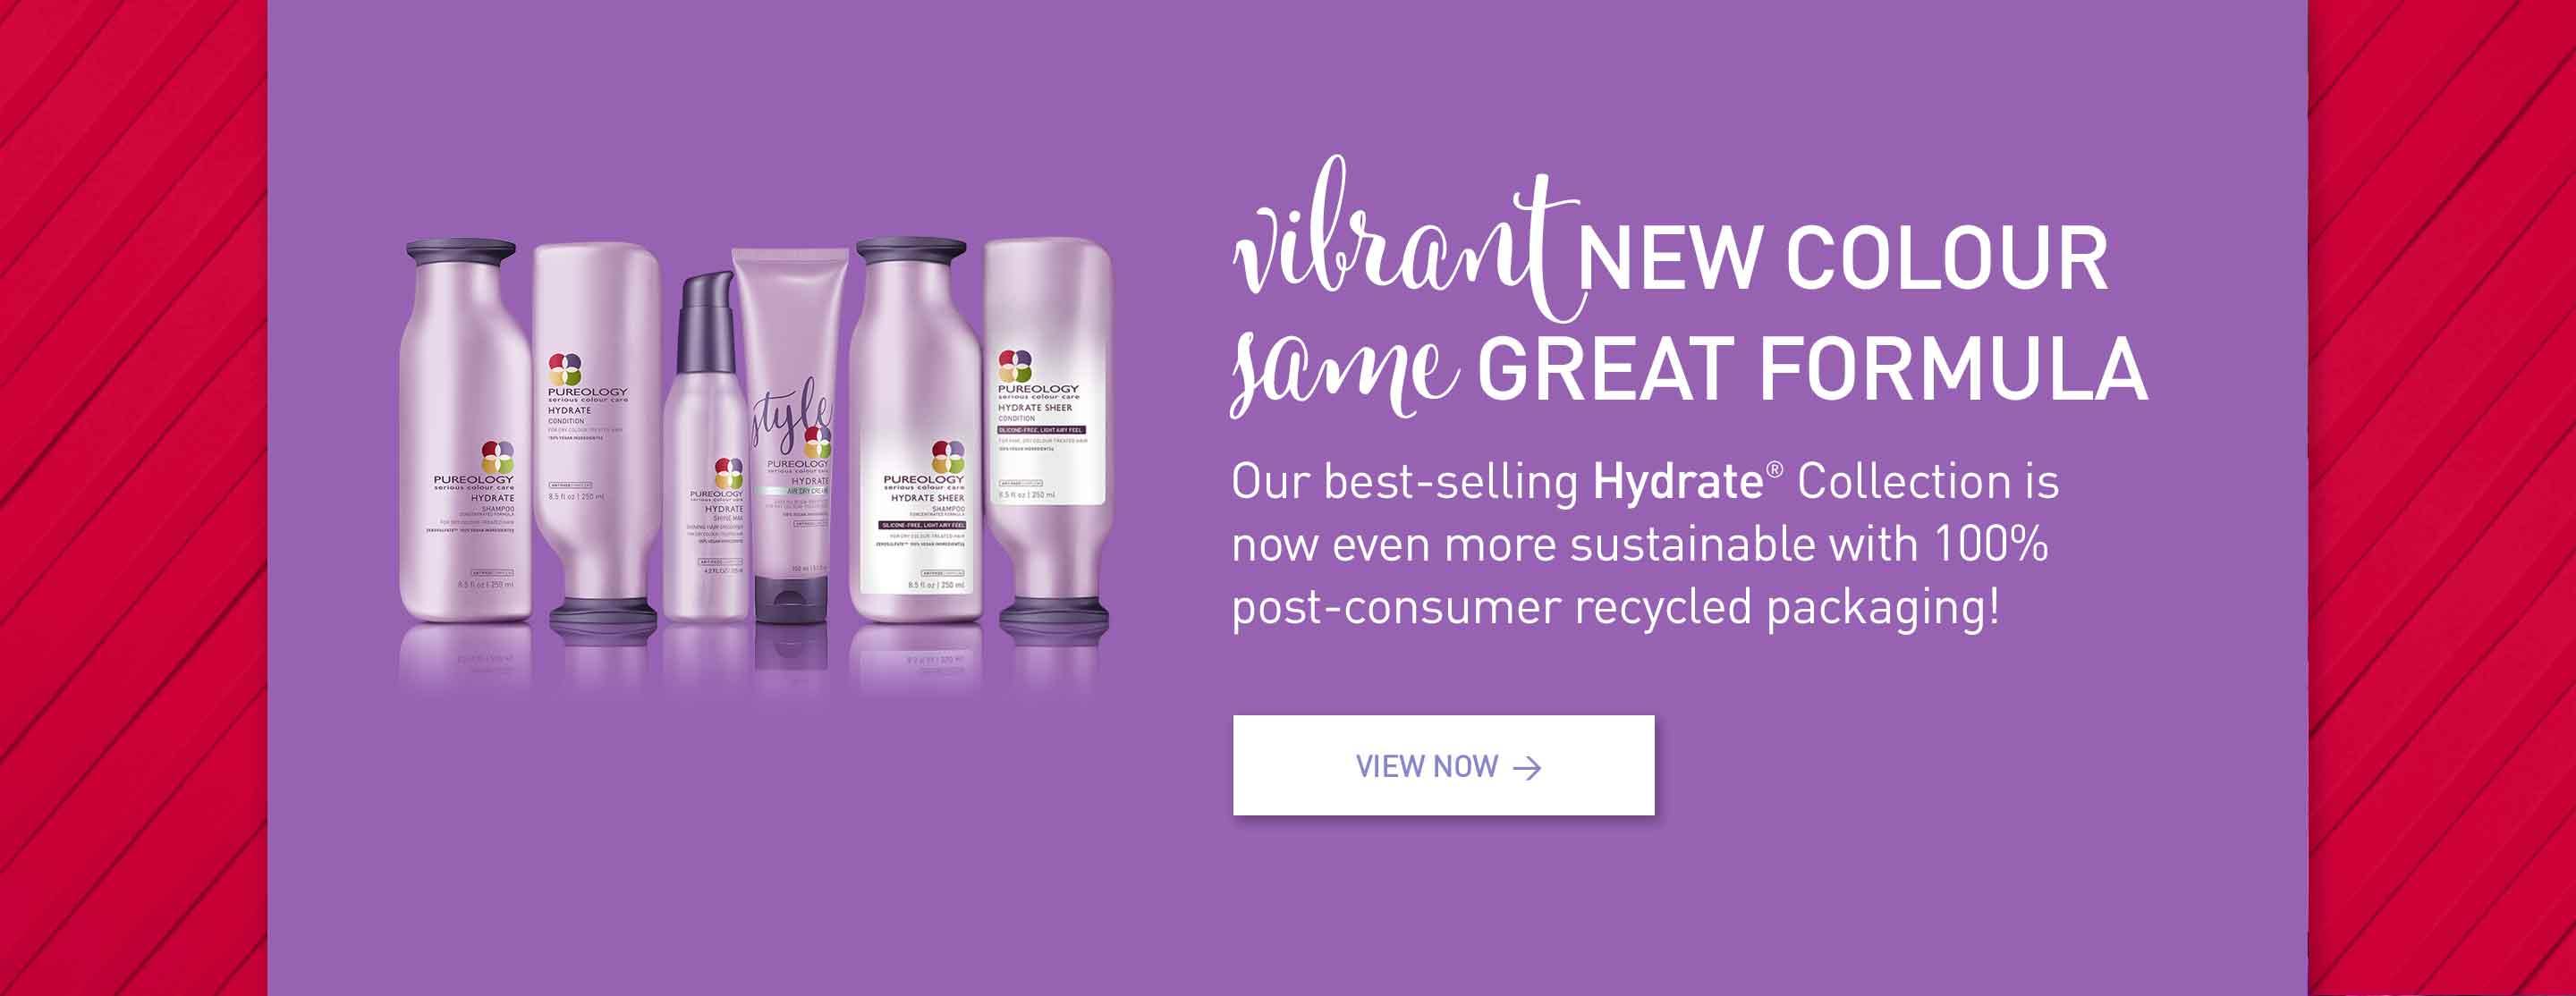 Welcome to the Colourful World of Pureology